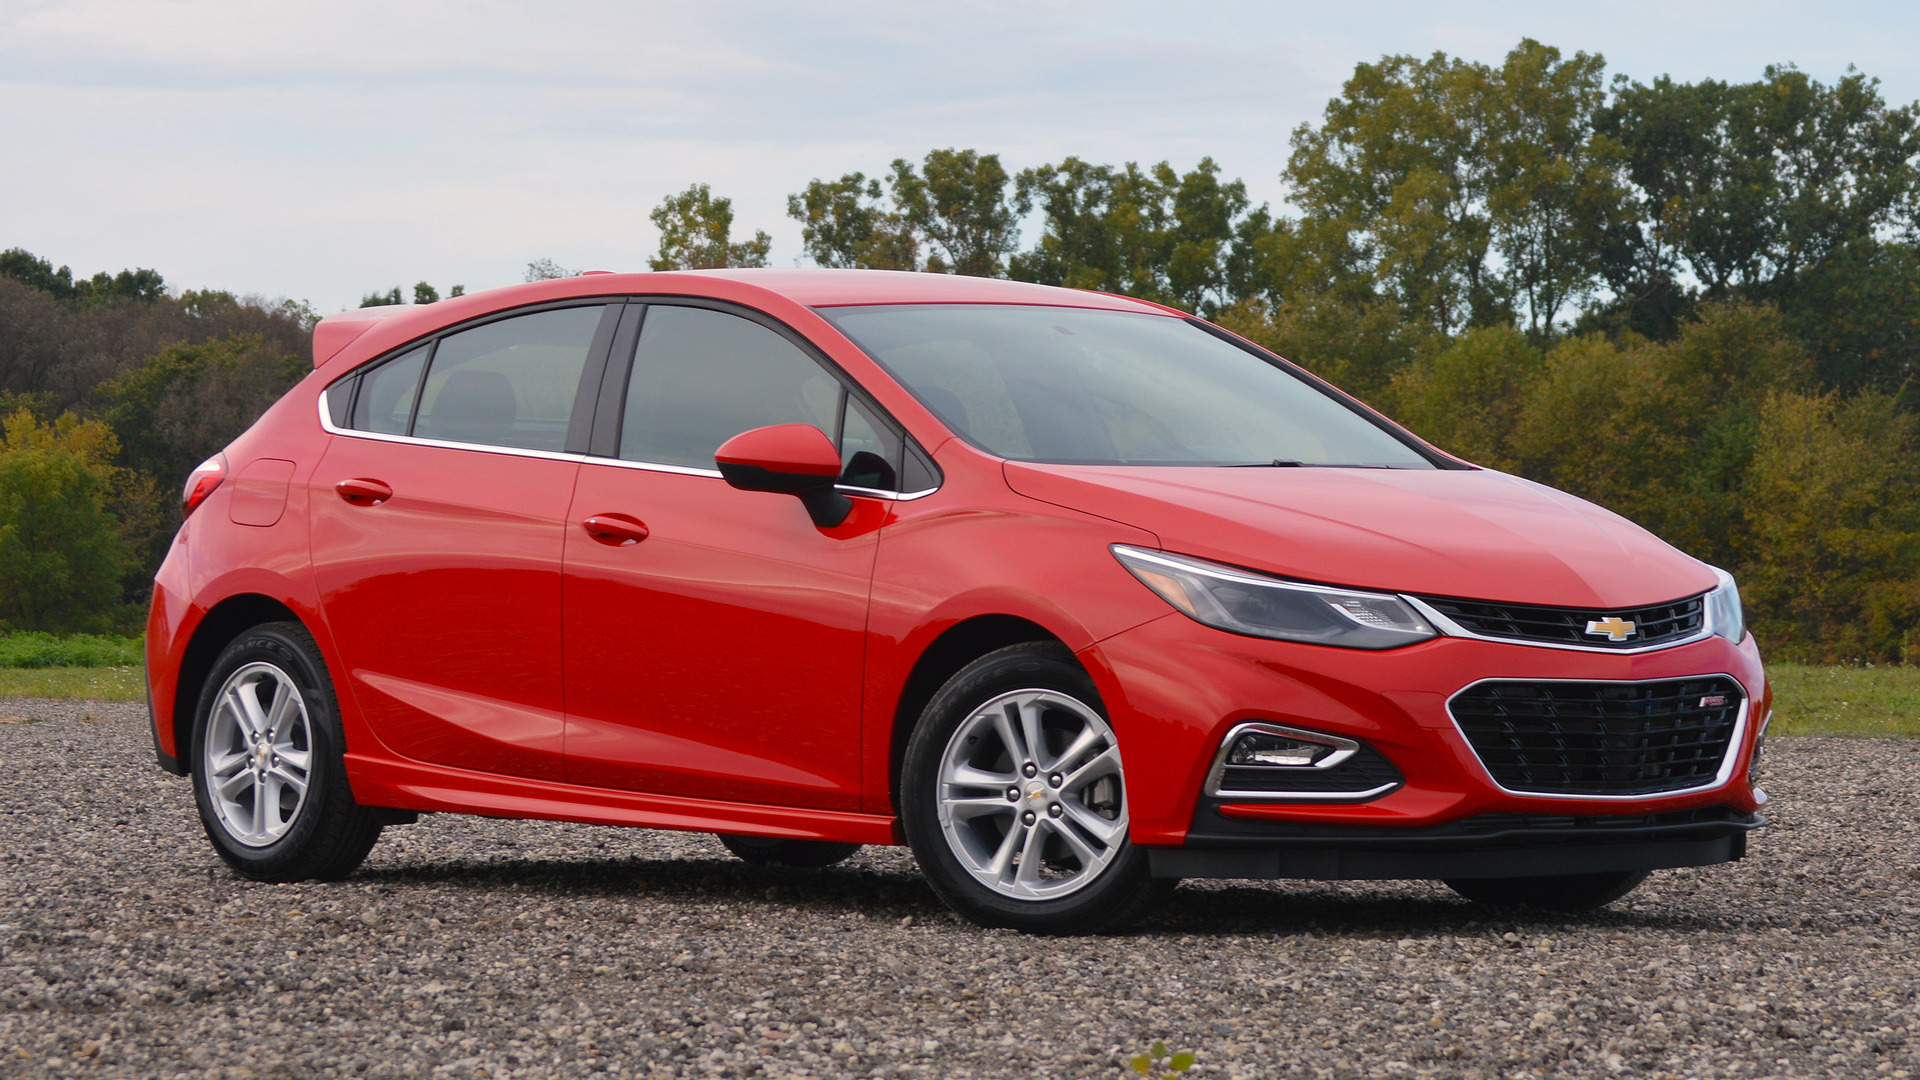 Review: 2017 Chevy Cruze Hatchback | Motor1.com